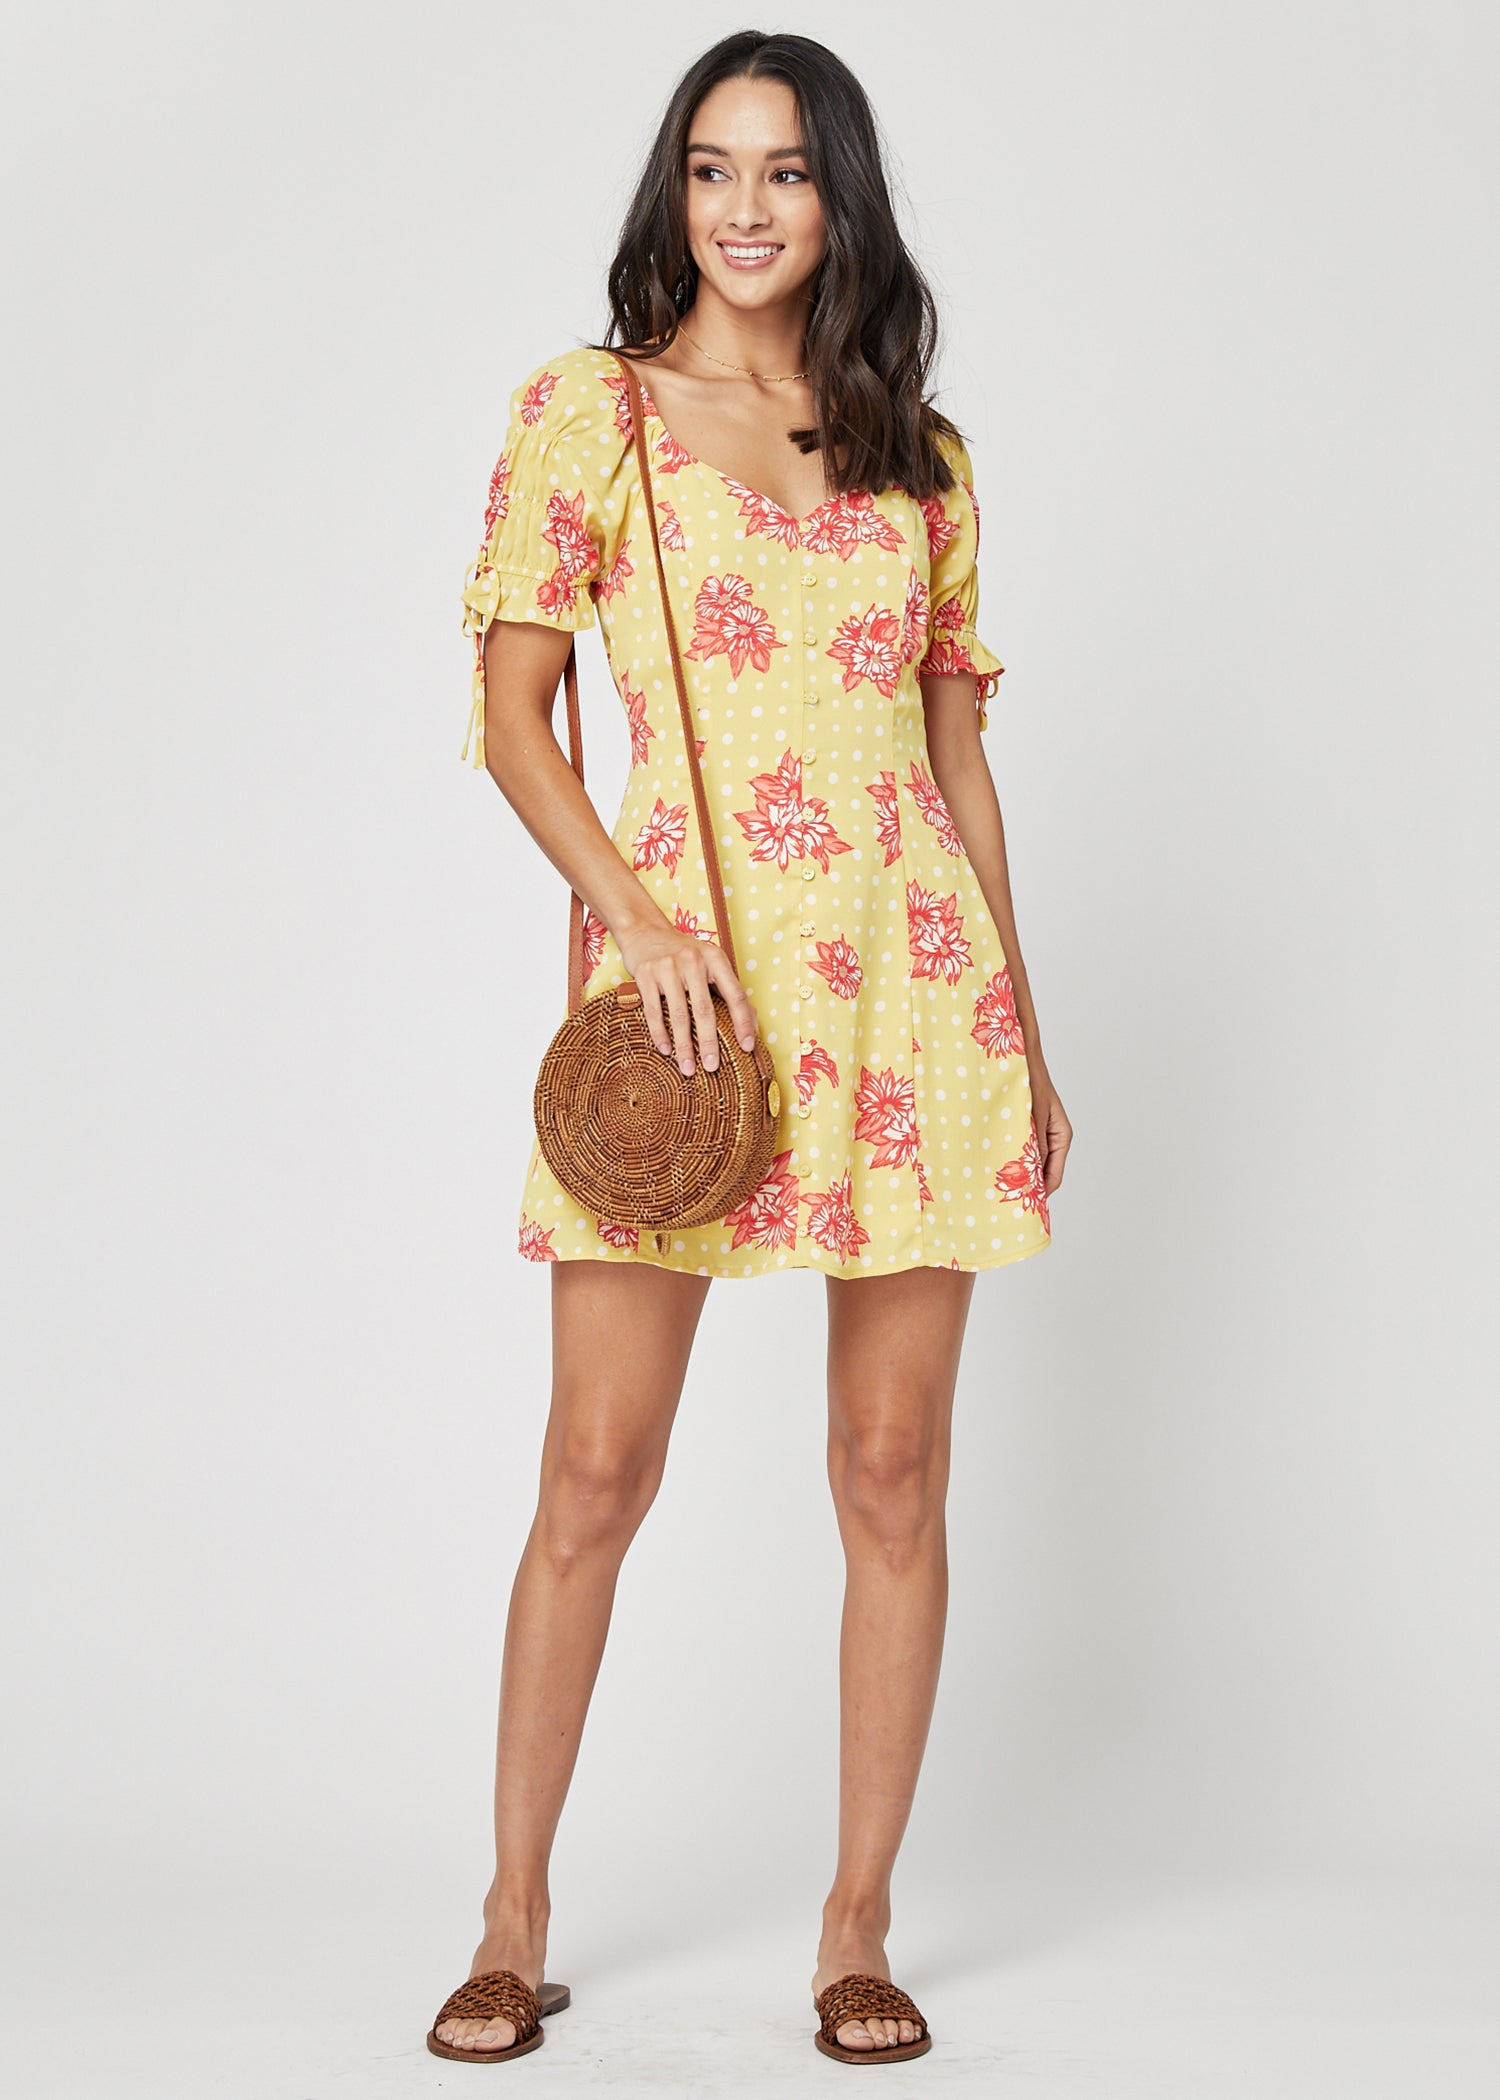 Tamarindo Mini Dress